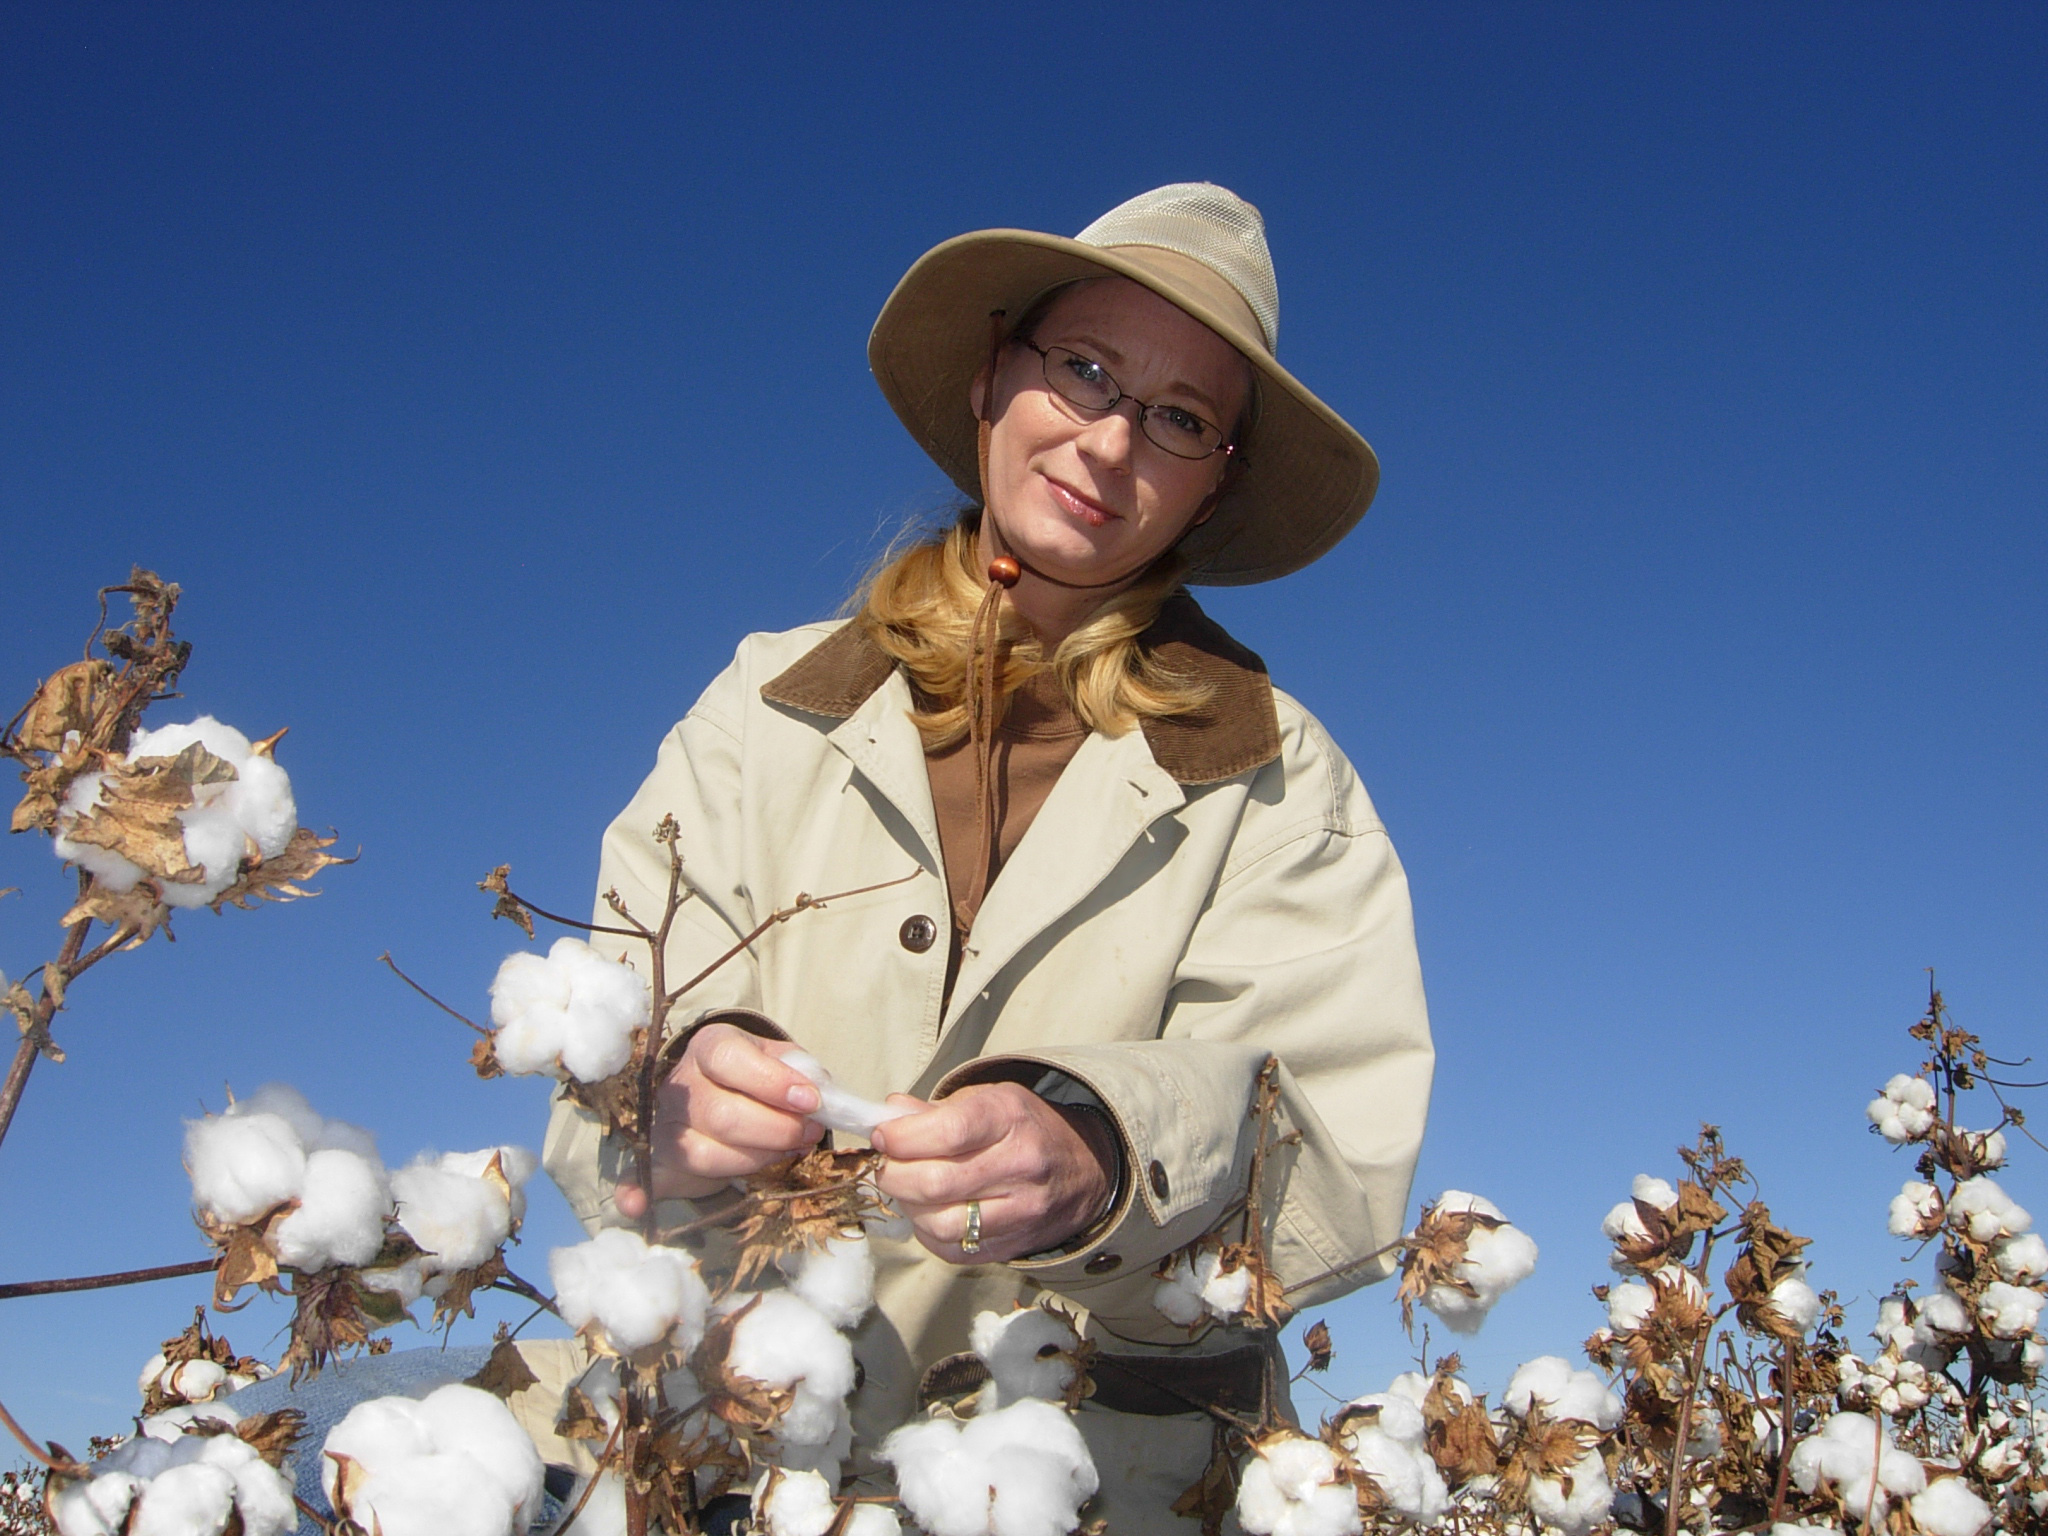 Jane Dever professor and cotton breeder